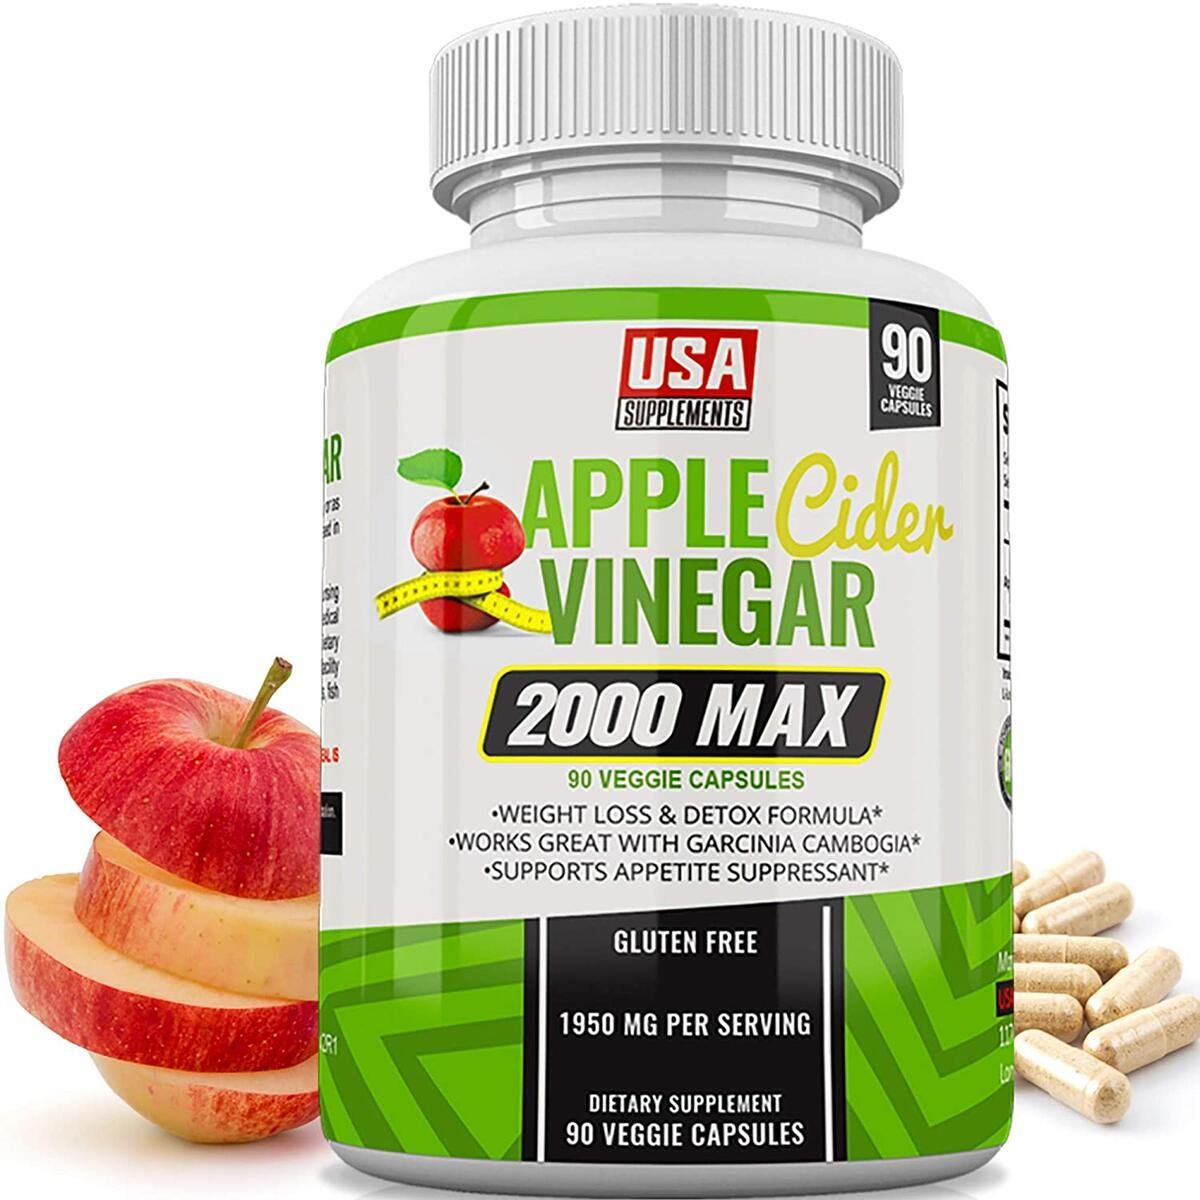 Apple Cider Vinegar 2000 Immune Boosting Supplement and Weight Loss Pills